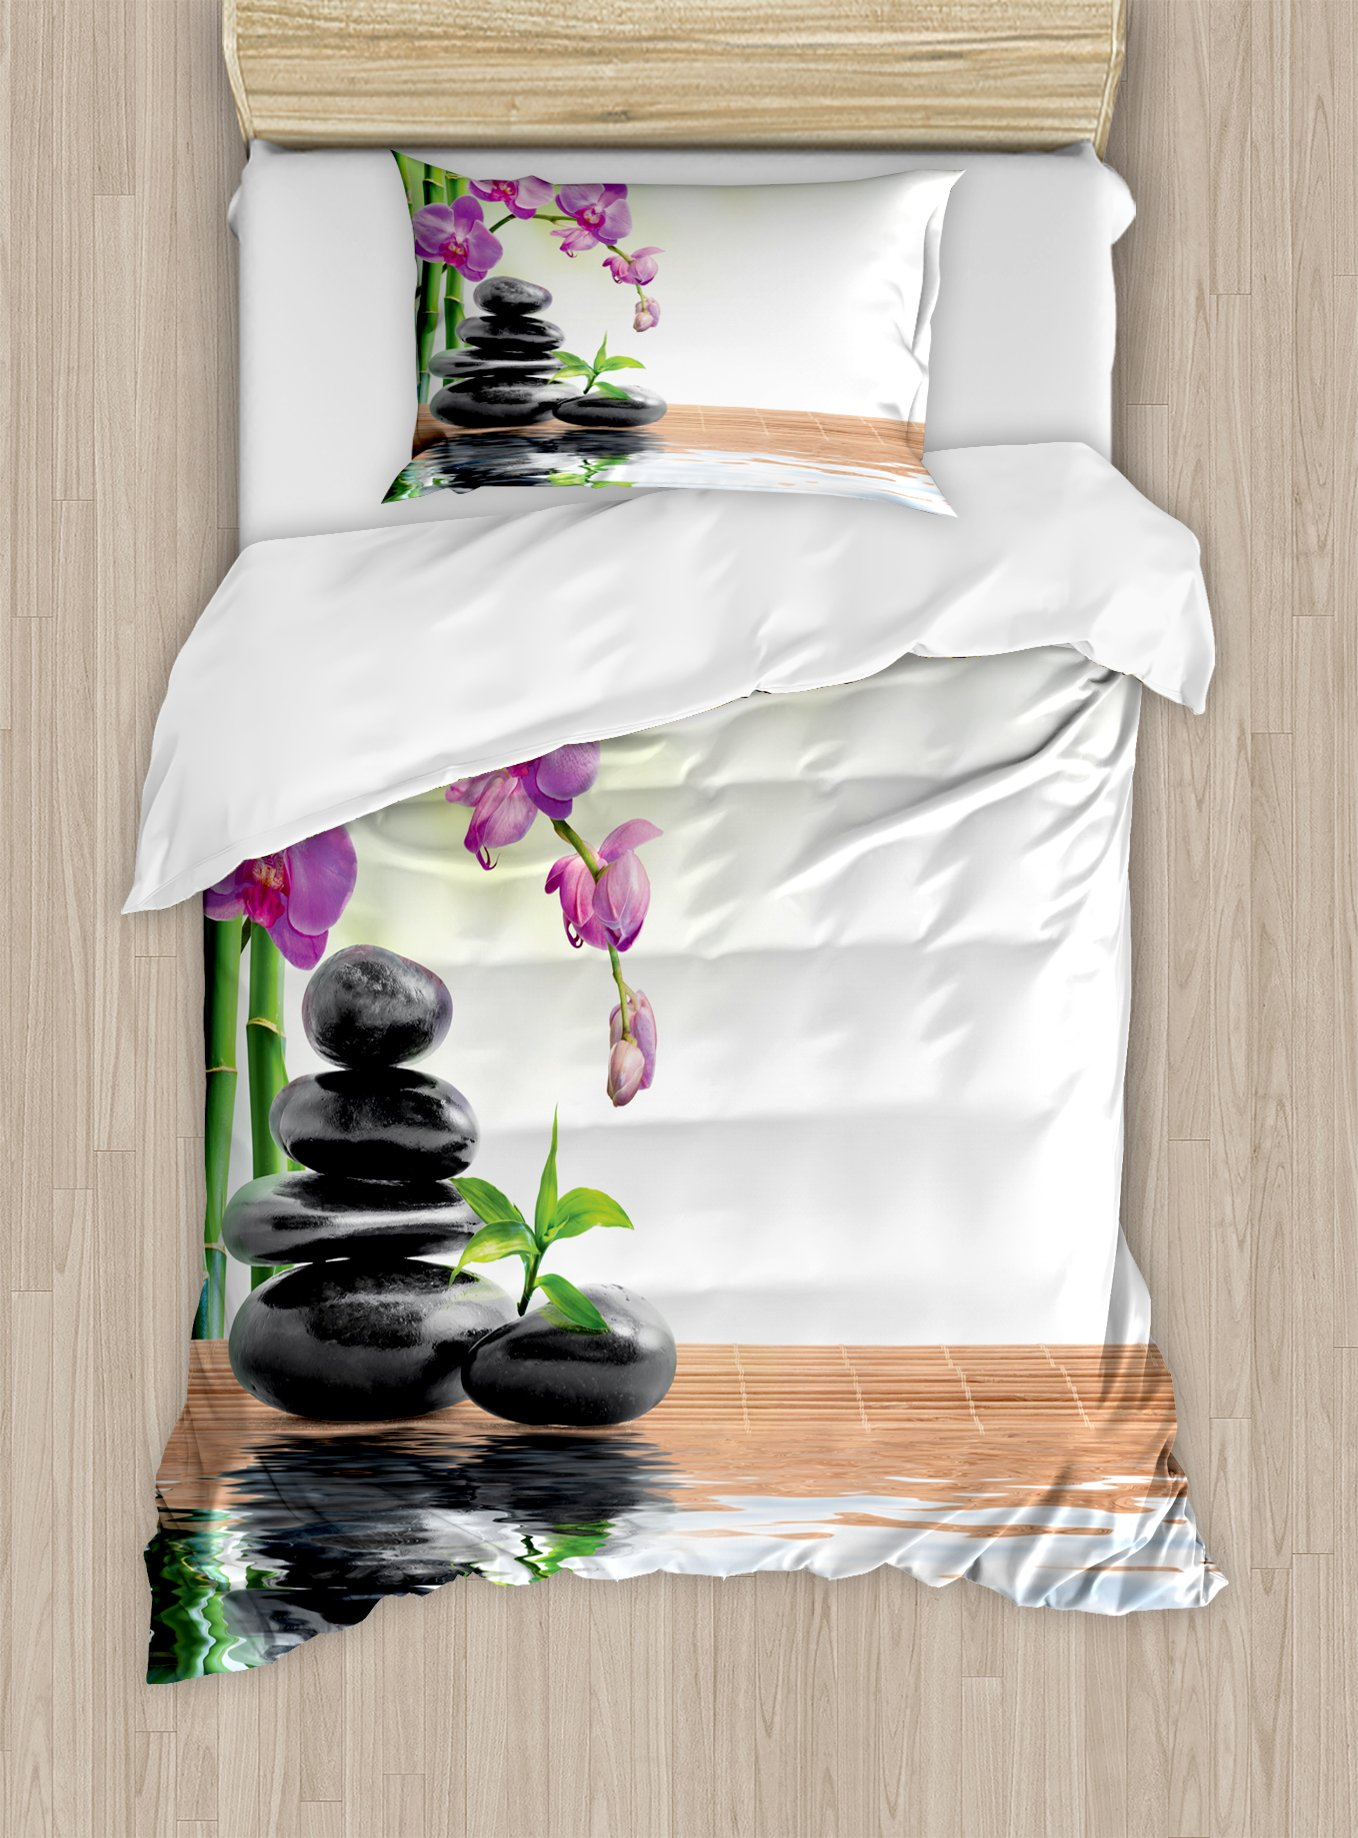 Ambesonne Spa Duvet Cover Set Twin Size, Spa with Spring Water Health Giving Properties Asian Eastern Way of Getting Better Art, Decorative 2 Piece Bedding Set with 1 Pillow Sham, Multicolor